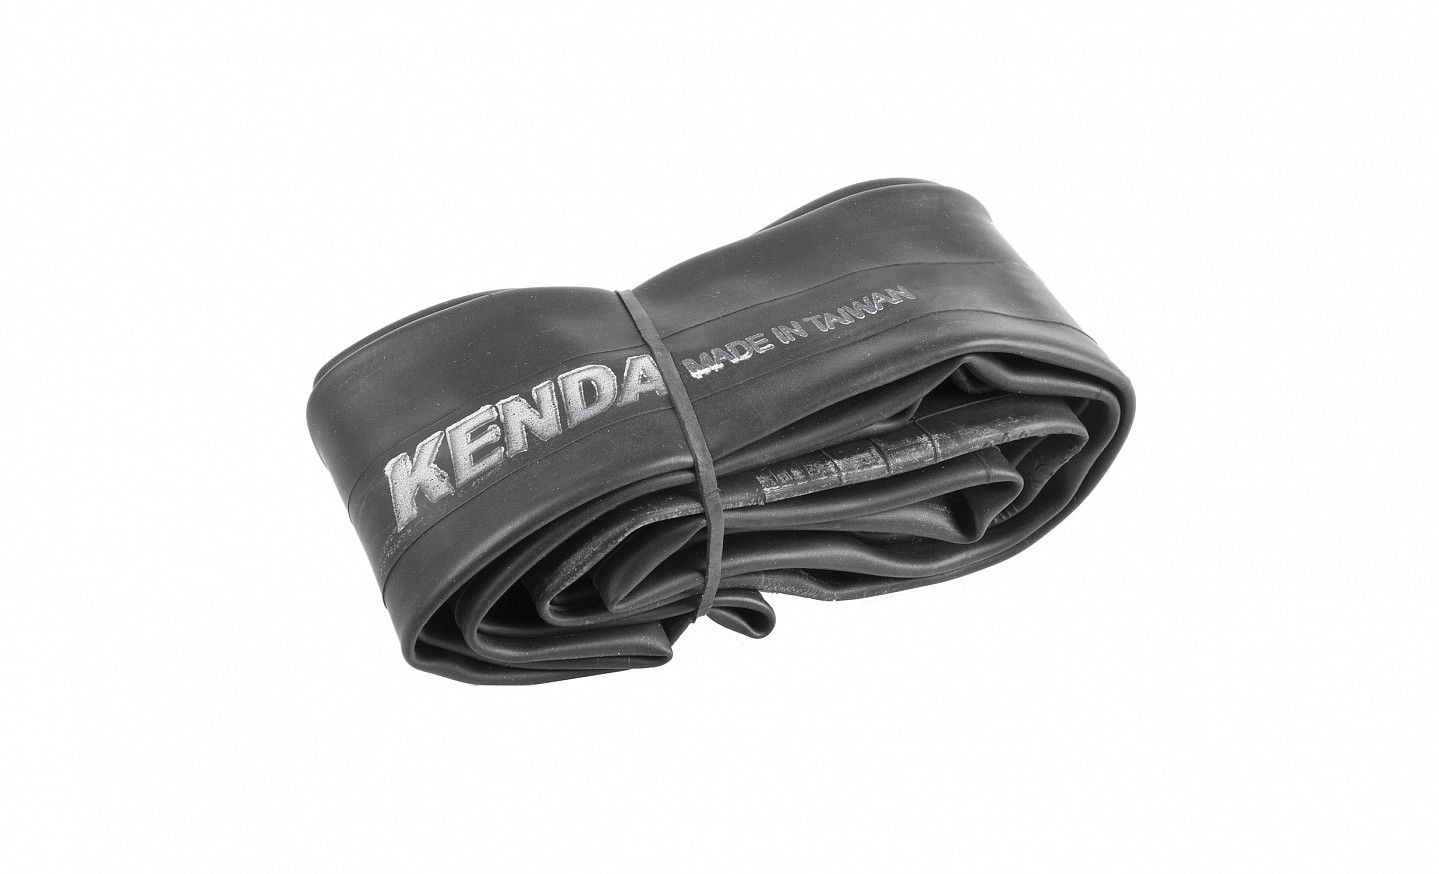 "KENDA 20 x 1.75 - 2.125"" bicycle tube"